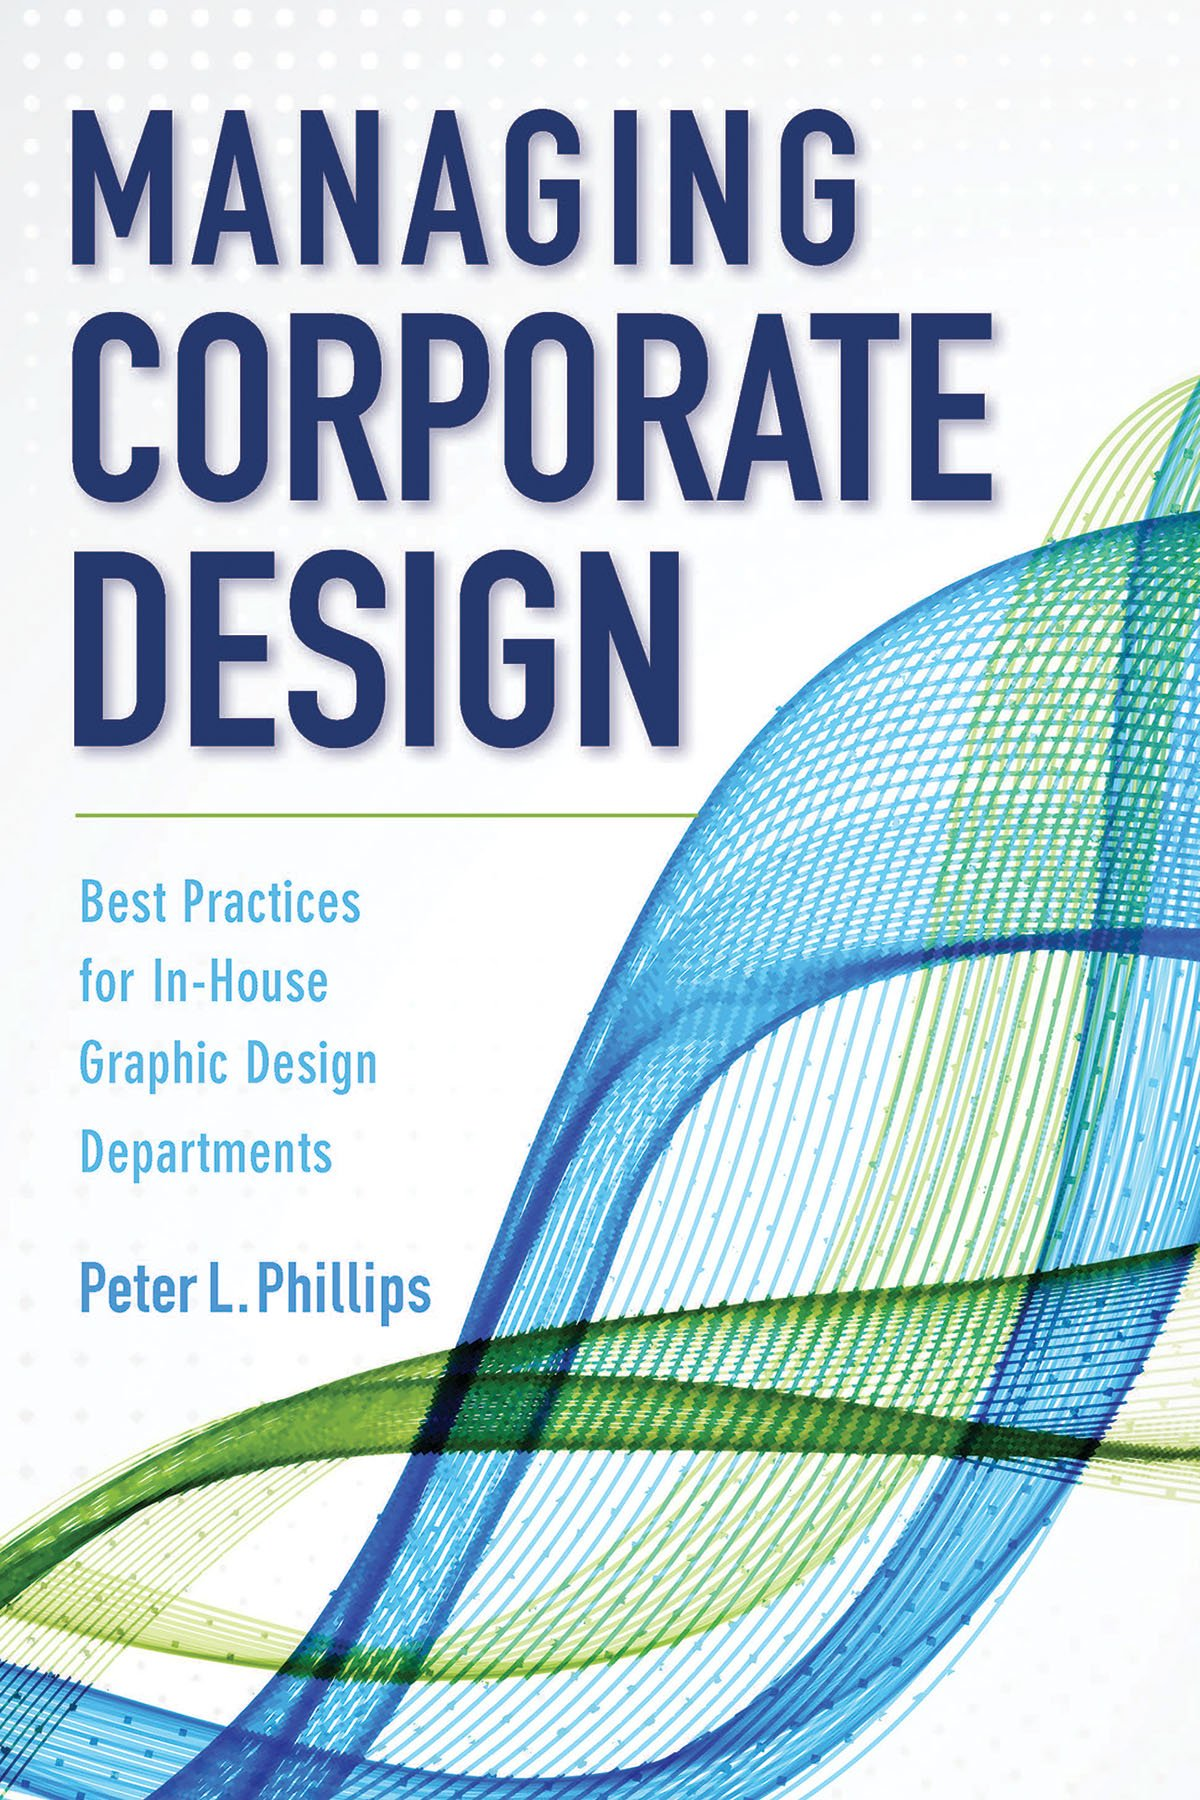 Best Practices for In-House Graphic Design Departments Managing Corporate Design